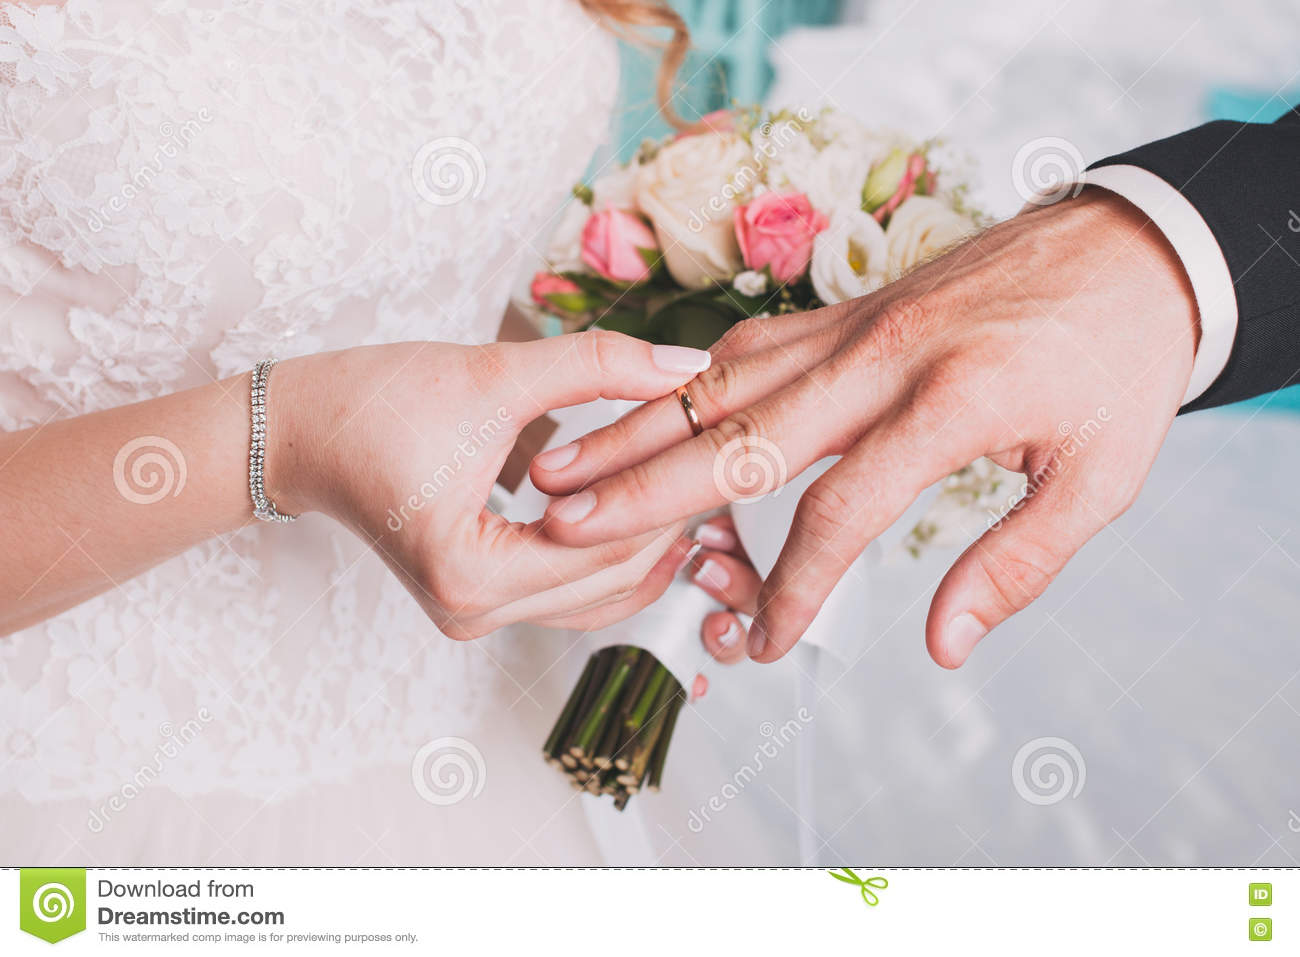 The Couple Exchange Wedding Rings Stock Image - Image of family ...